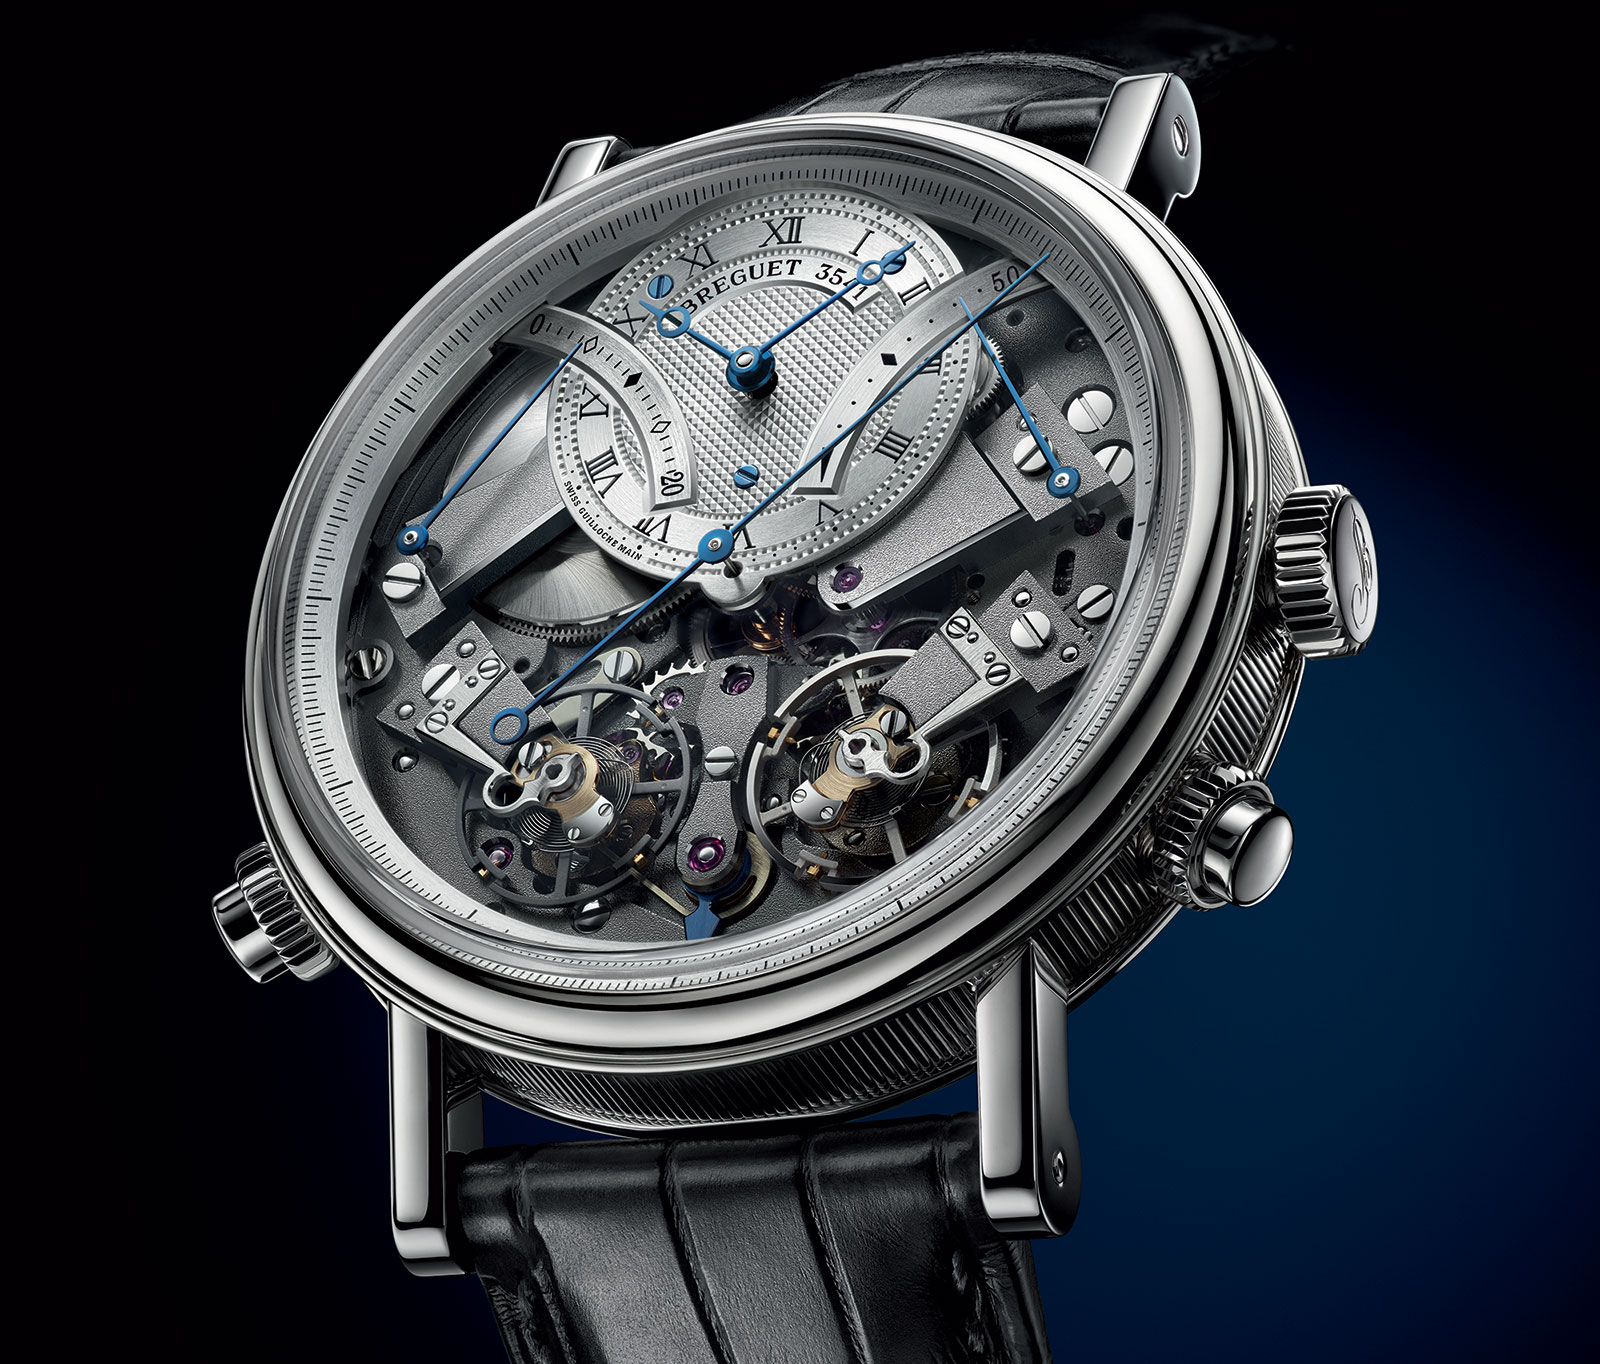 Breguet-Tradition-Chronographe-Independant-7077